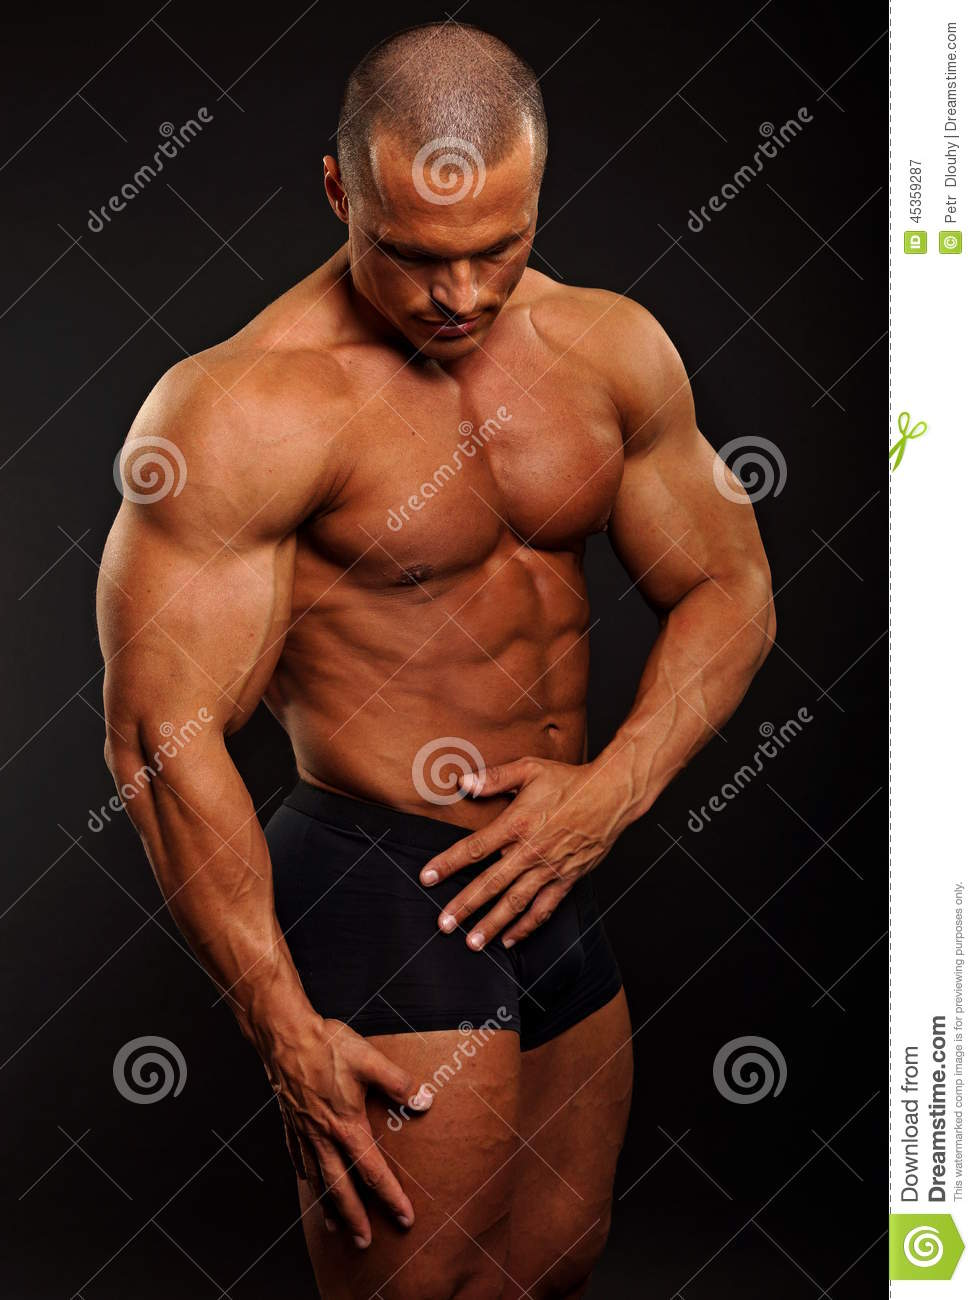 Poses musculaires d homme